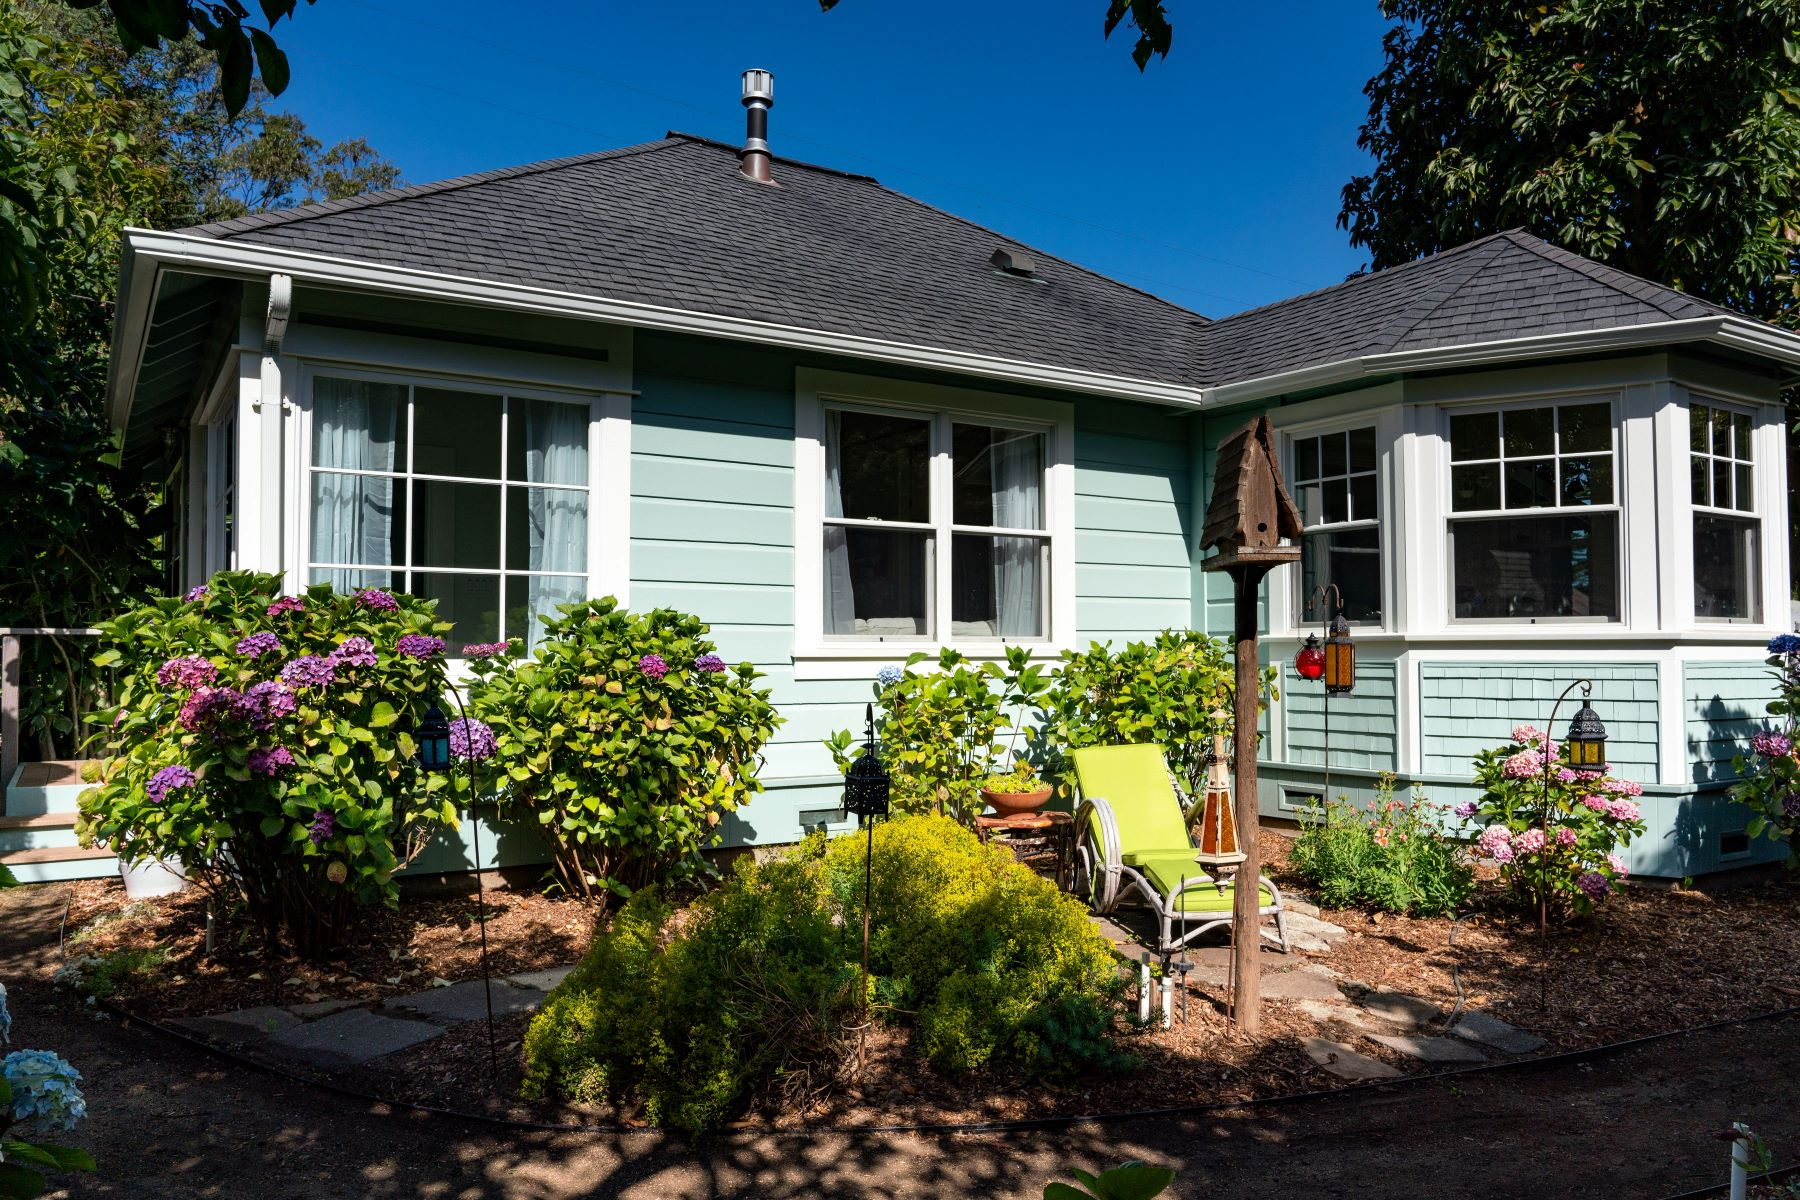 Single Family Homes for Sale at Albion Coastal Cottage 3700 Albion Little River Rd Albion, California 95410 United States